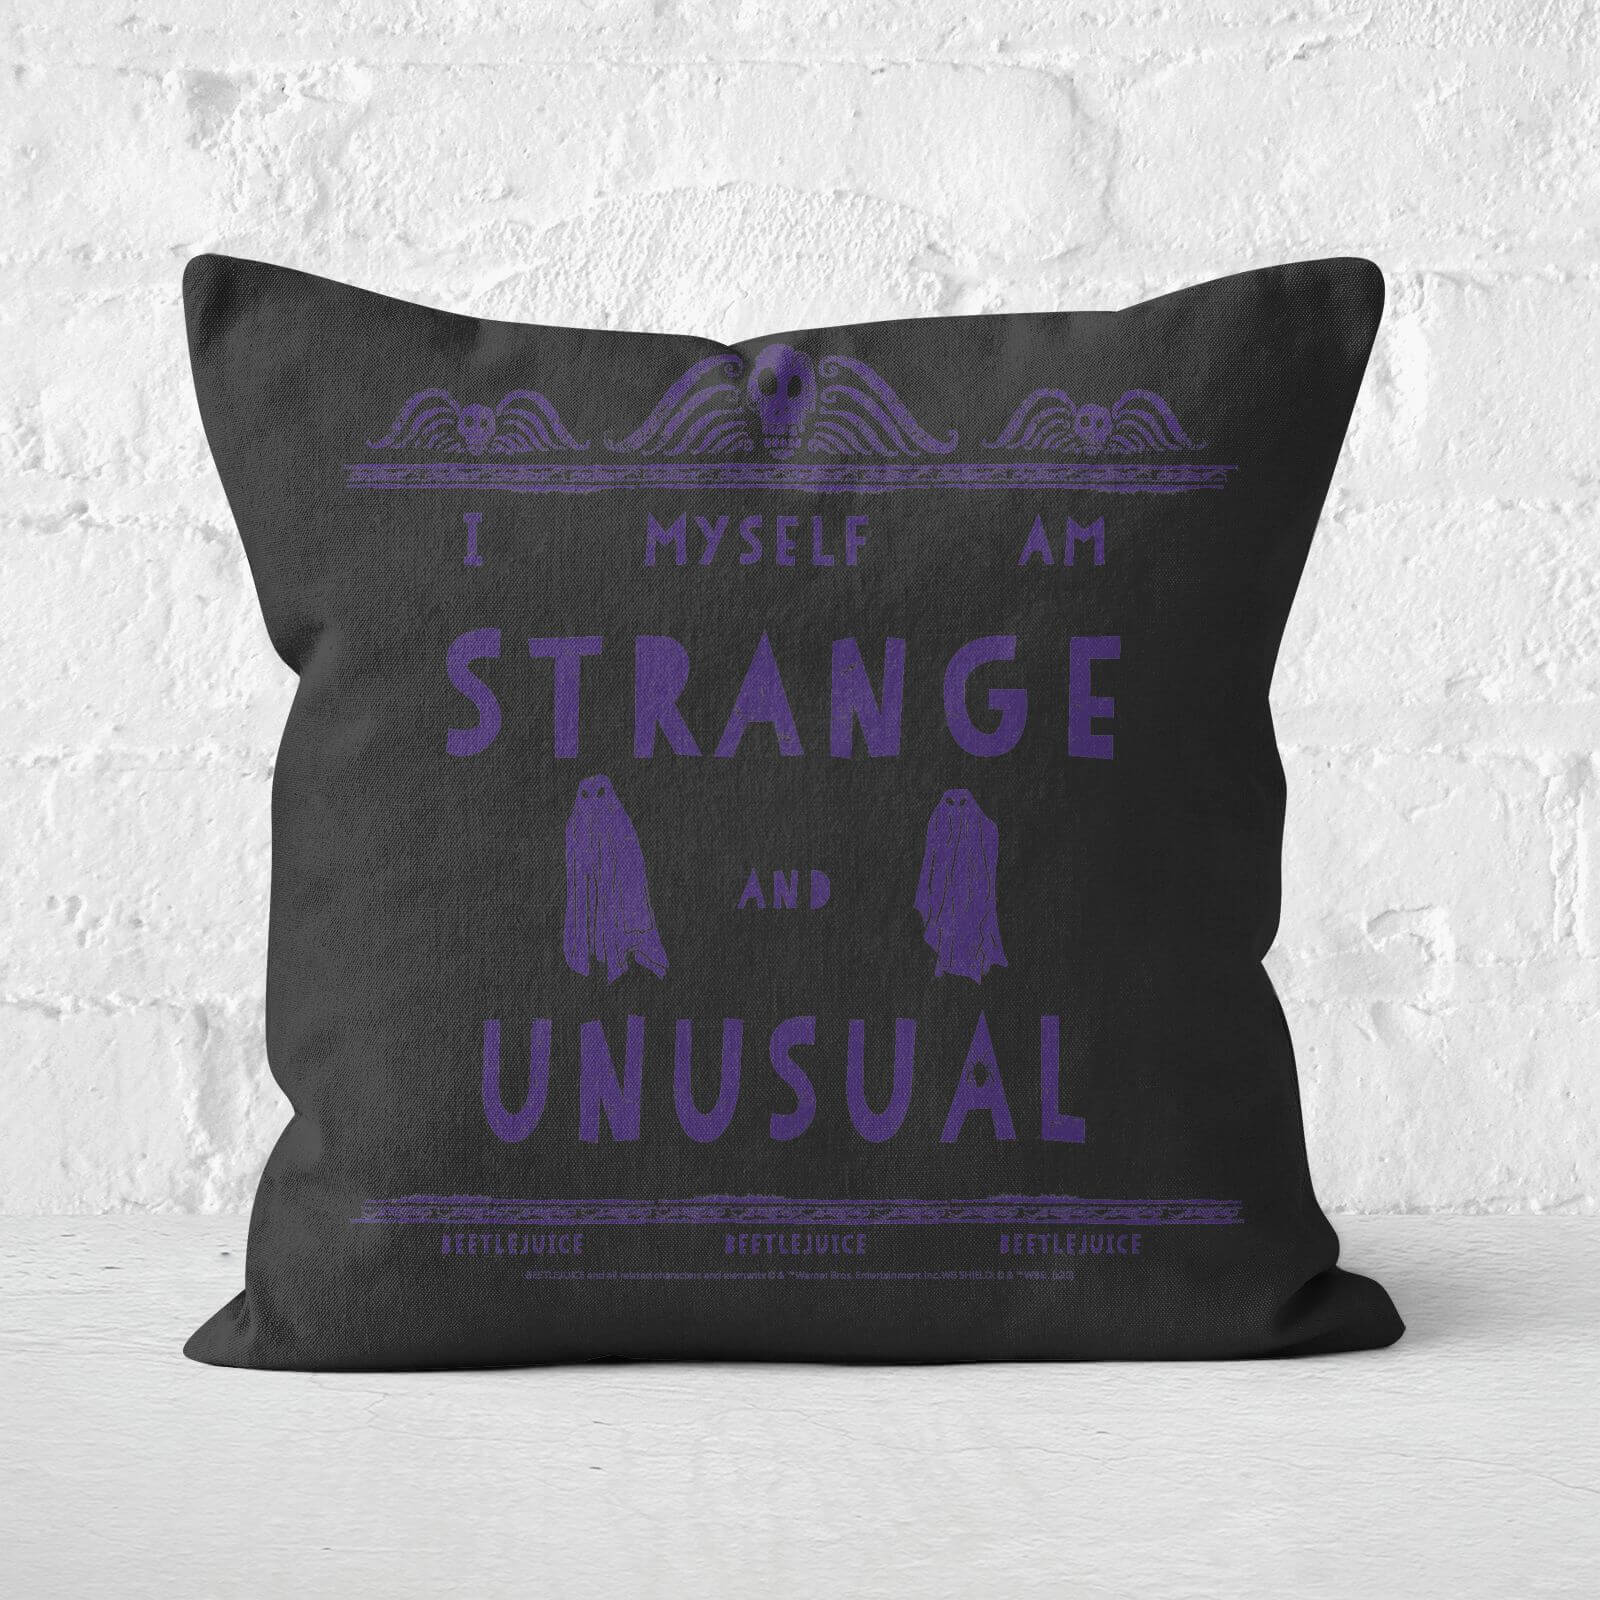 Beetlejuice Cushion Square Cushion - 60x60cm - Soft Touch